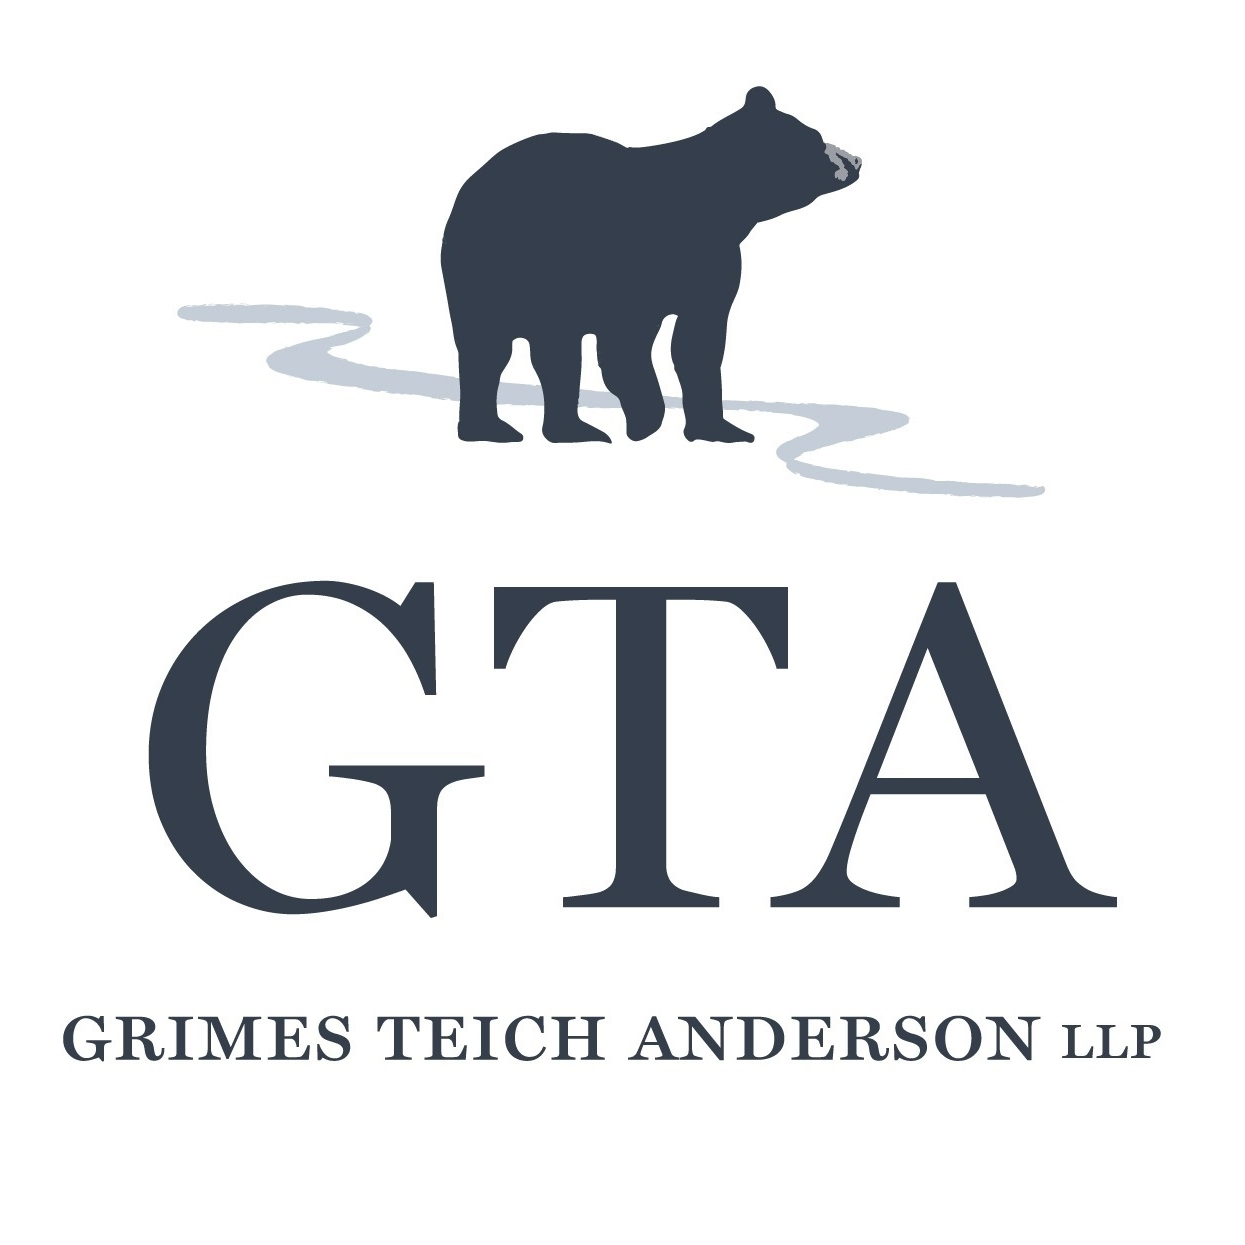 Grimes Teich Anderson LLP - Asheville, NC - Attorneys